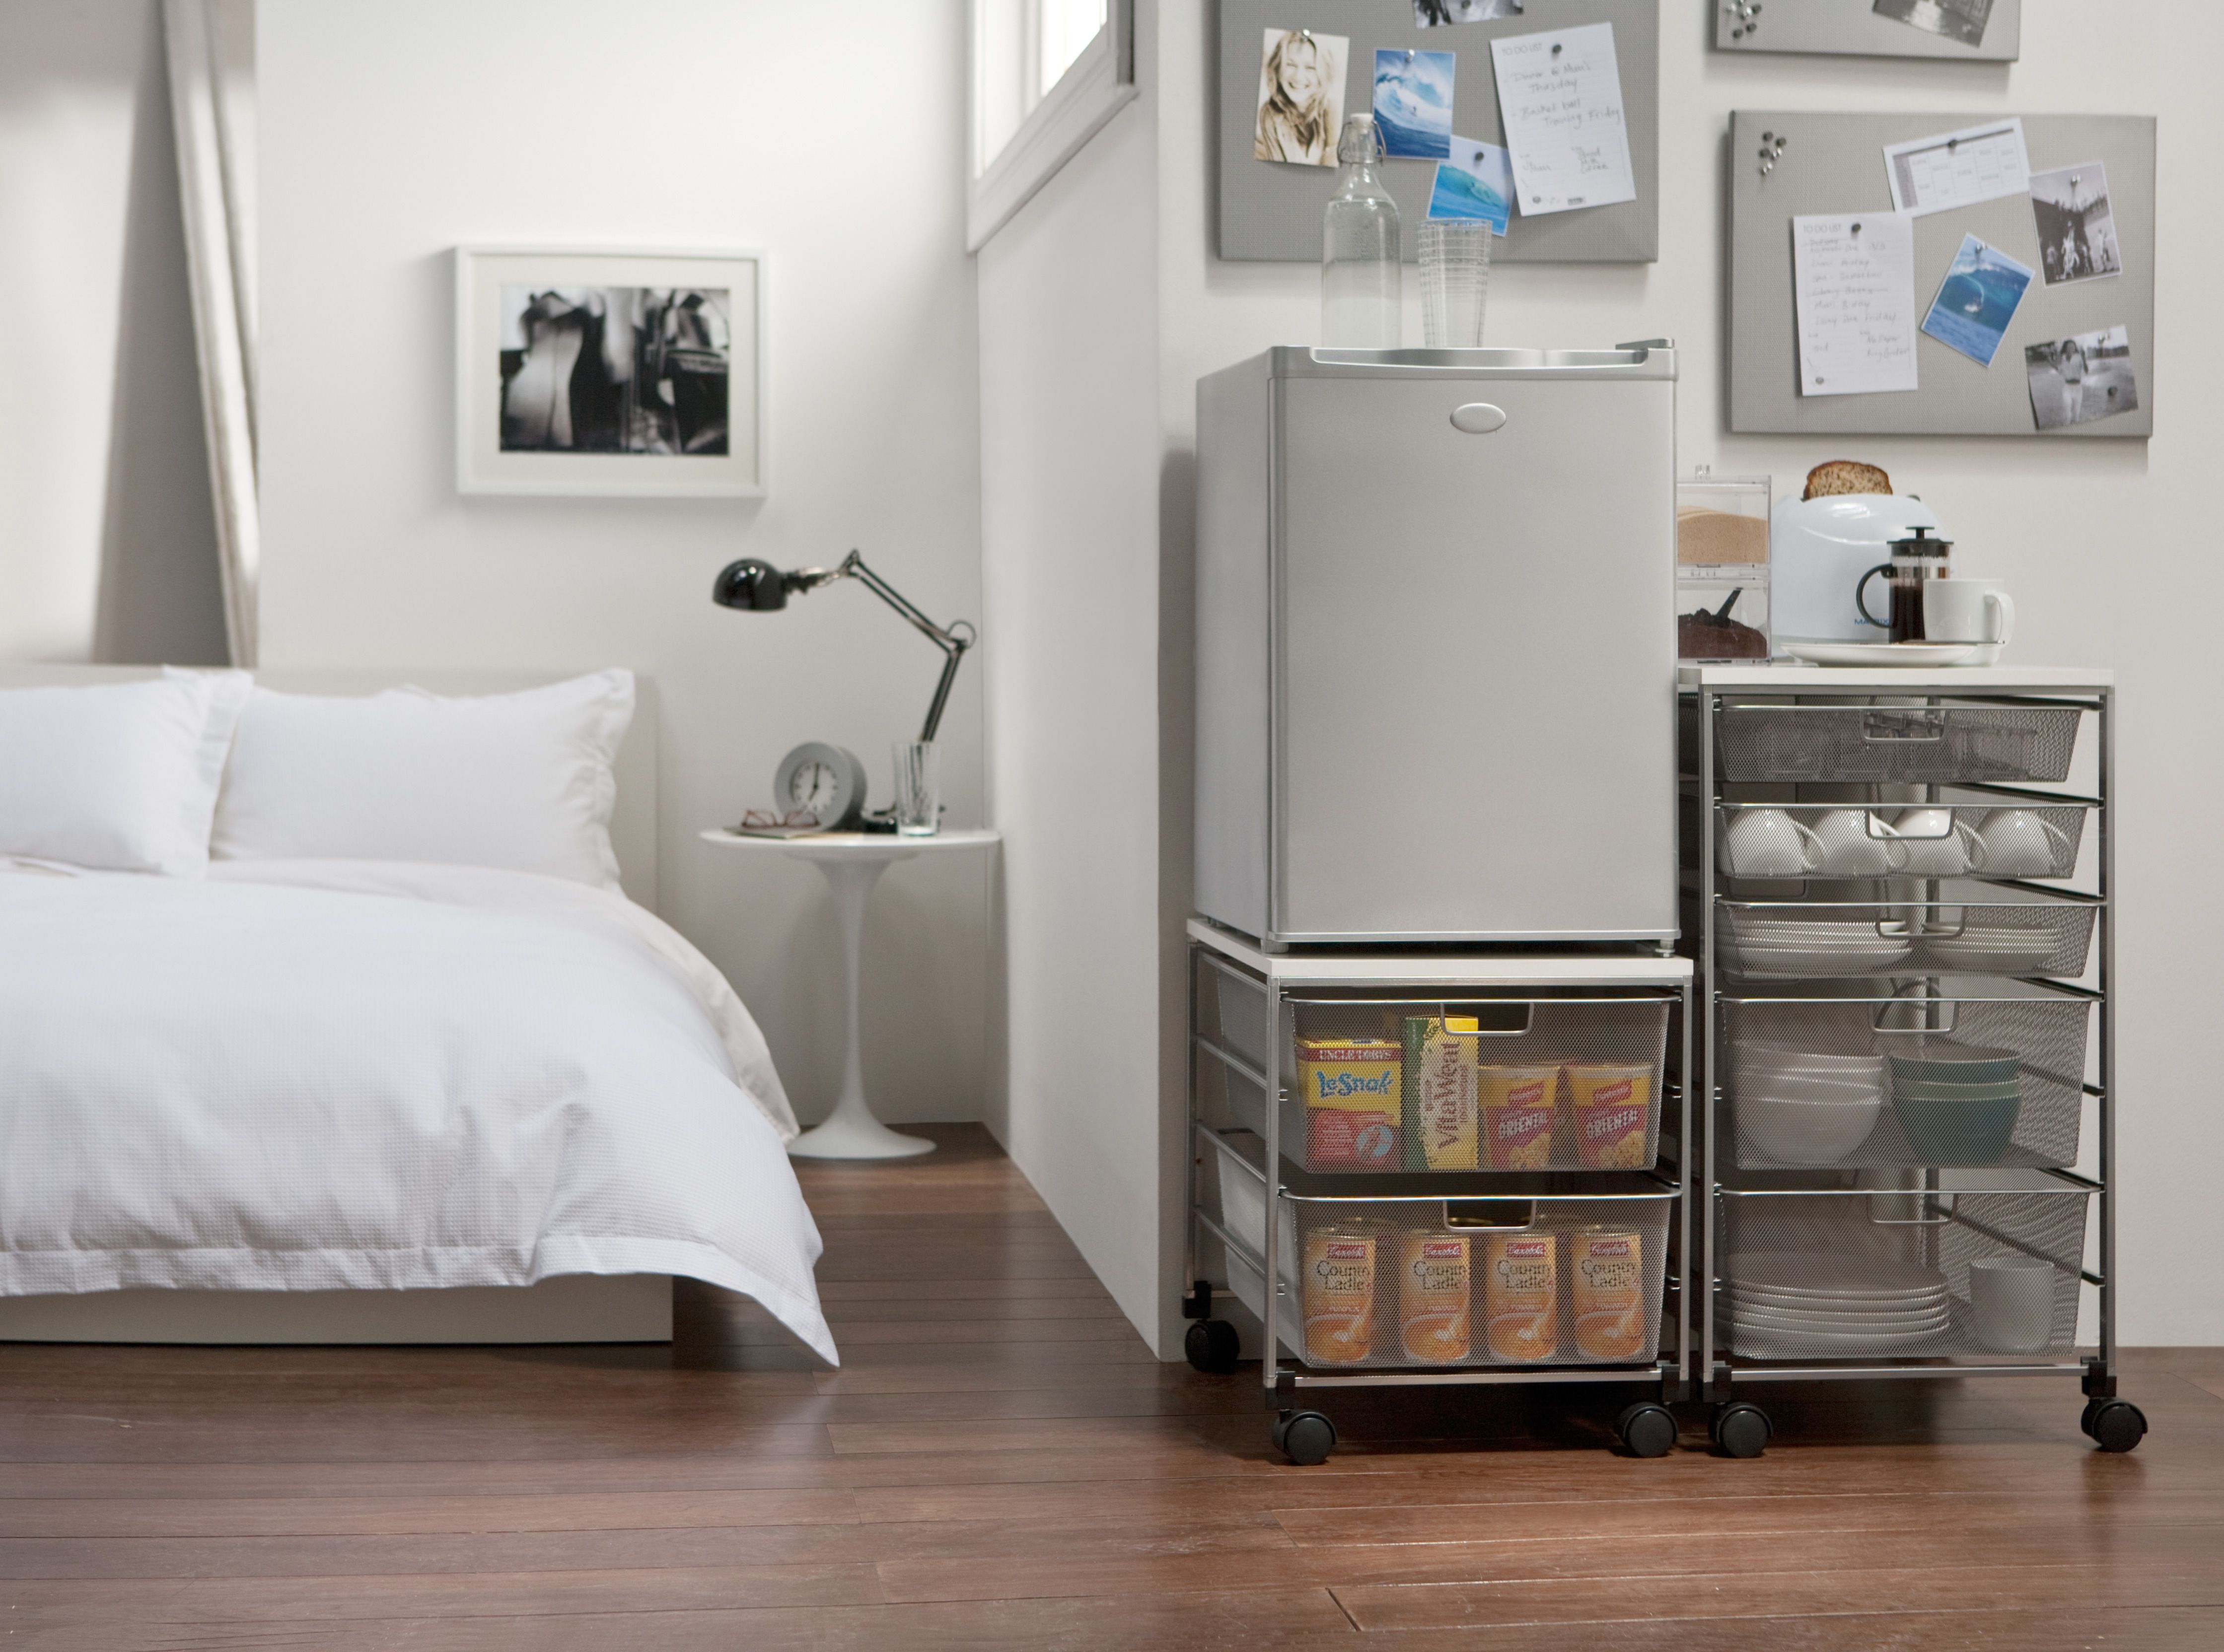 Kitchen Room Bedroom Elfa Mini Kitchen For Your Room Available At Howards Storage